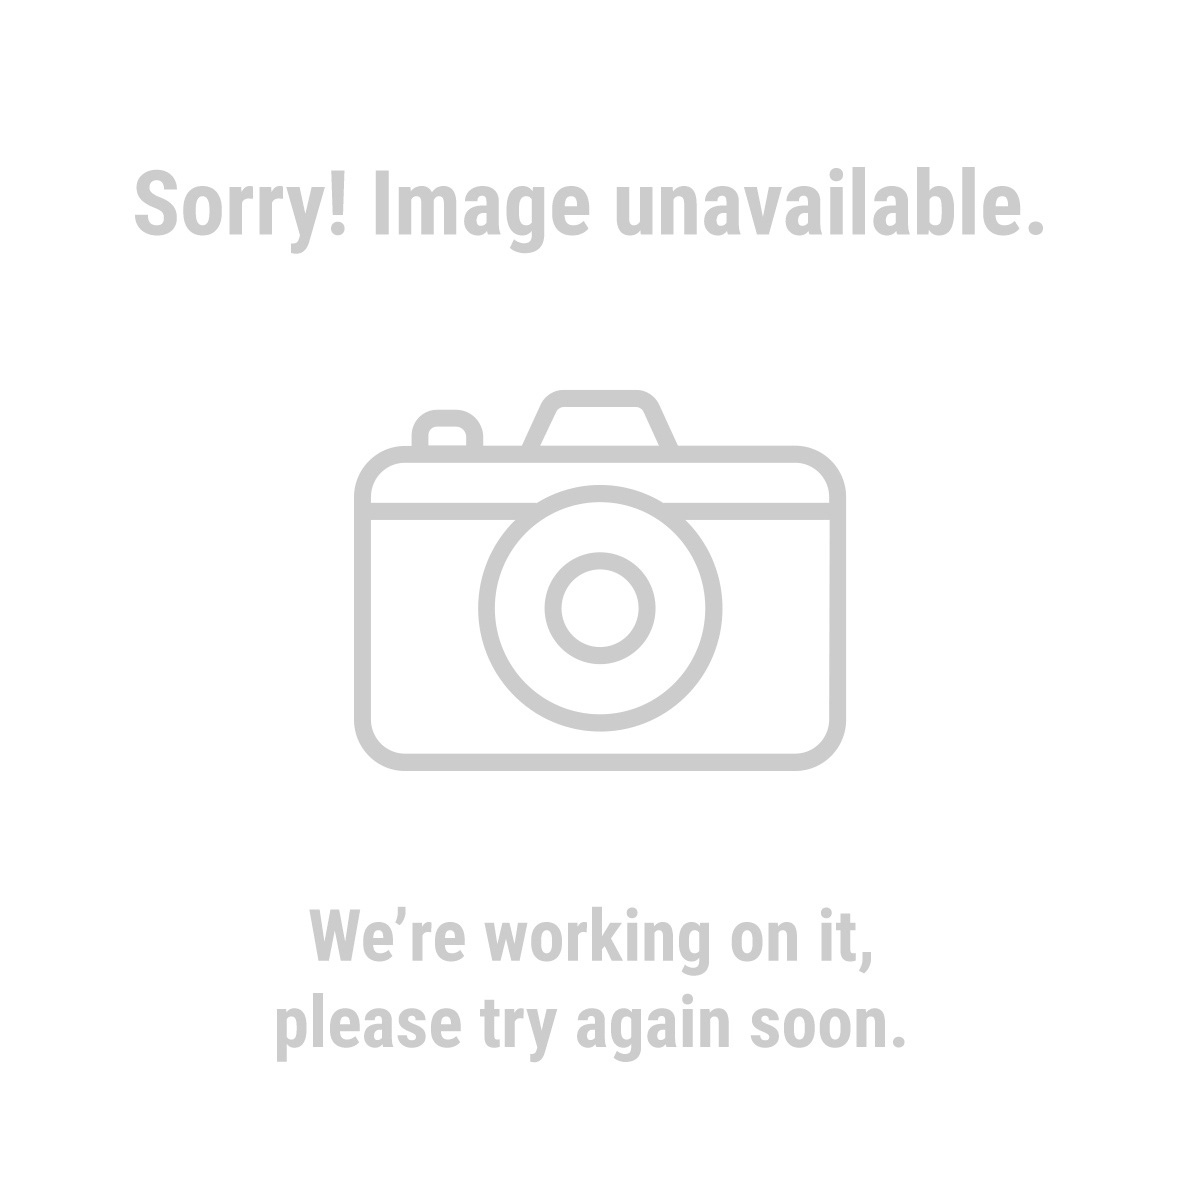 Thunderbolt Magnum 97861 4 Pack AAA High Capacity NiMH Rechargeable Batteries